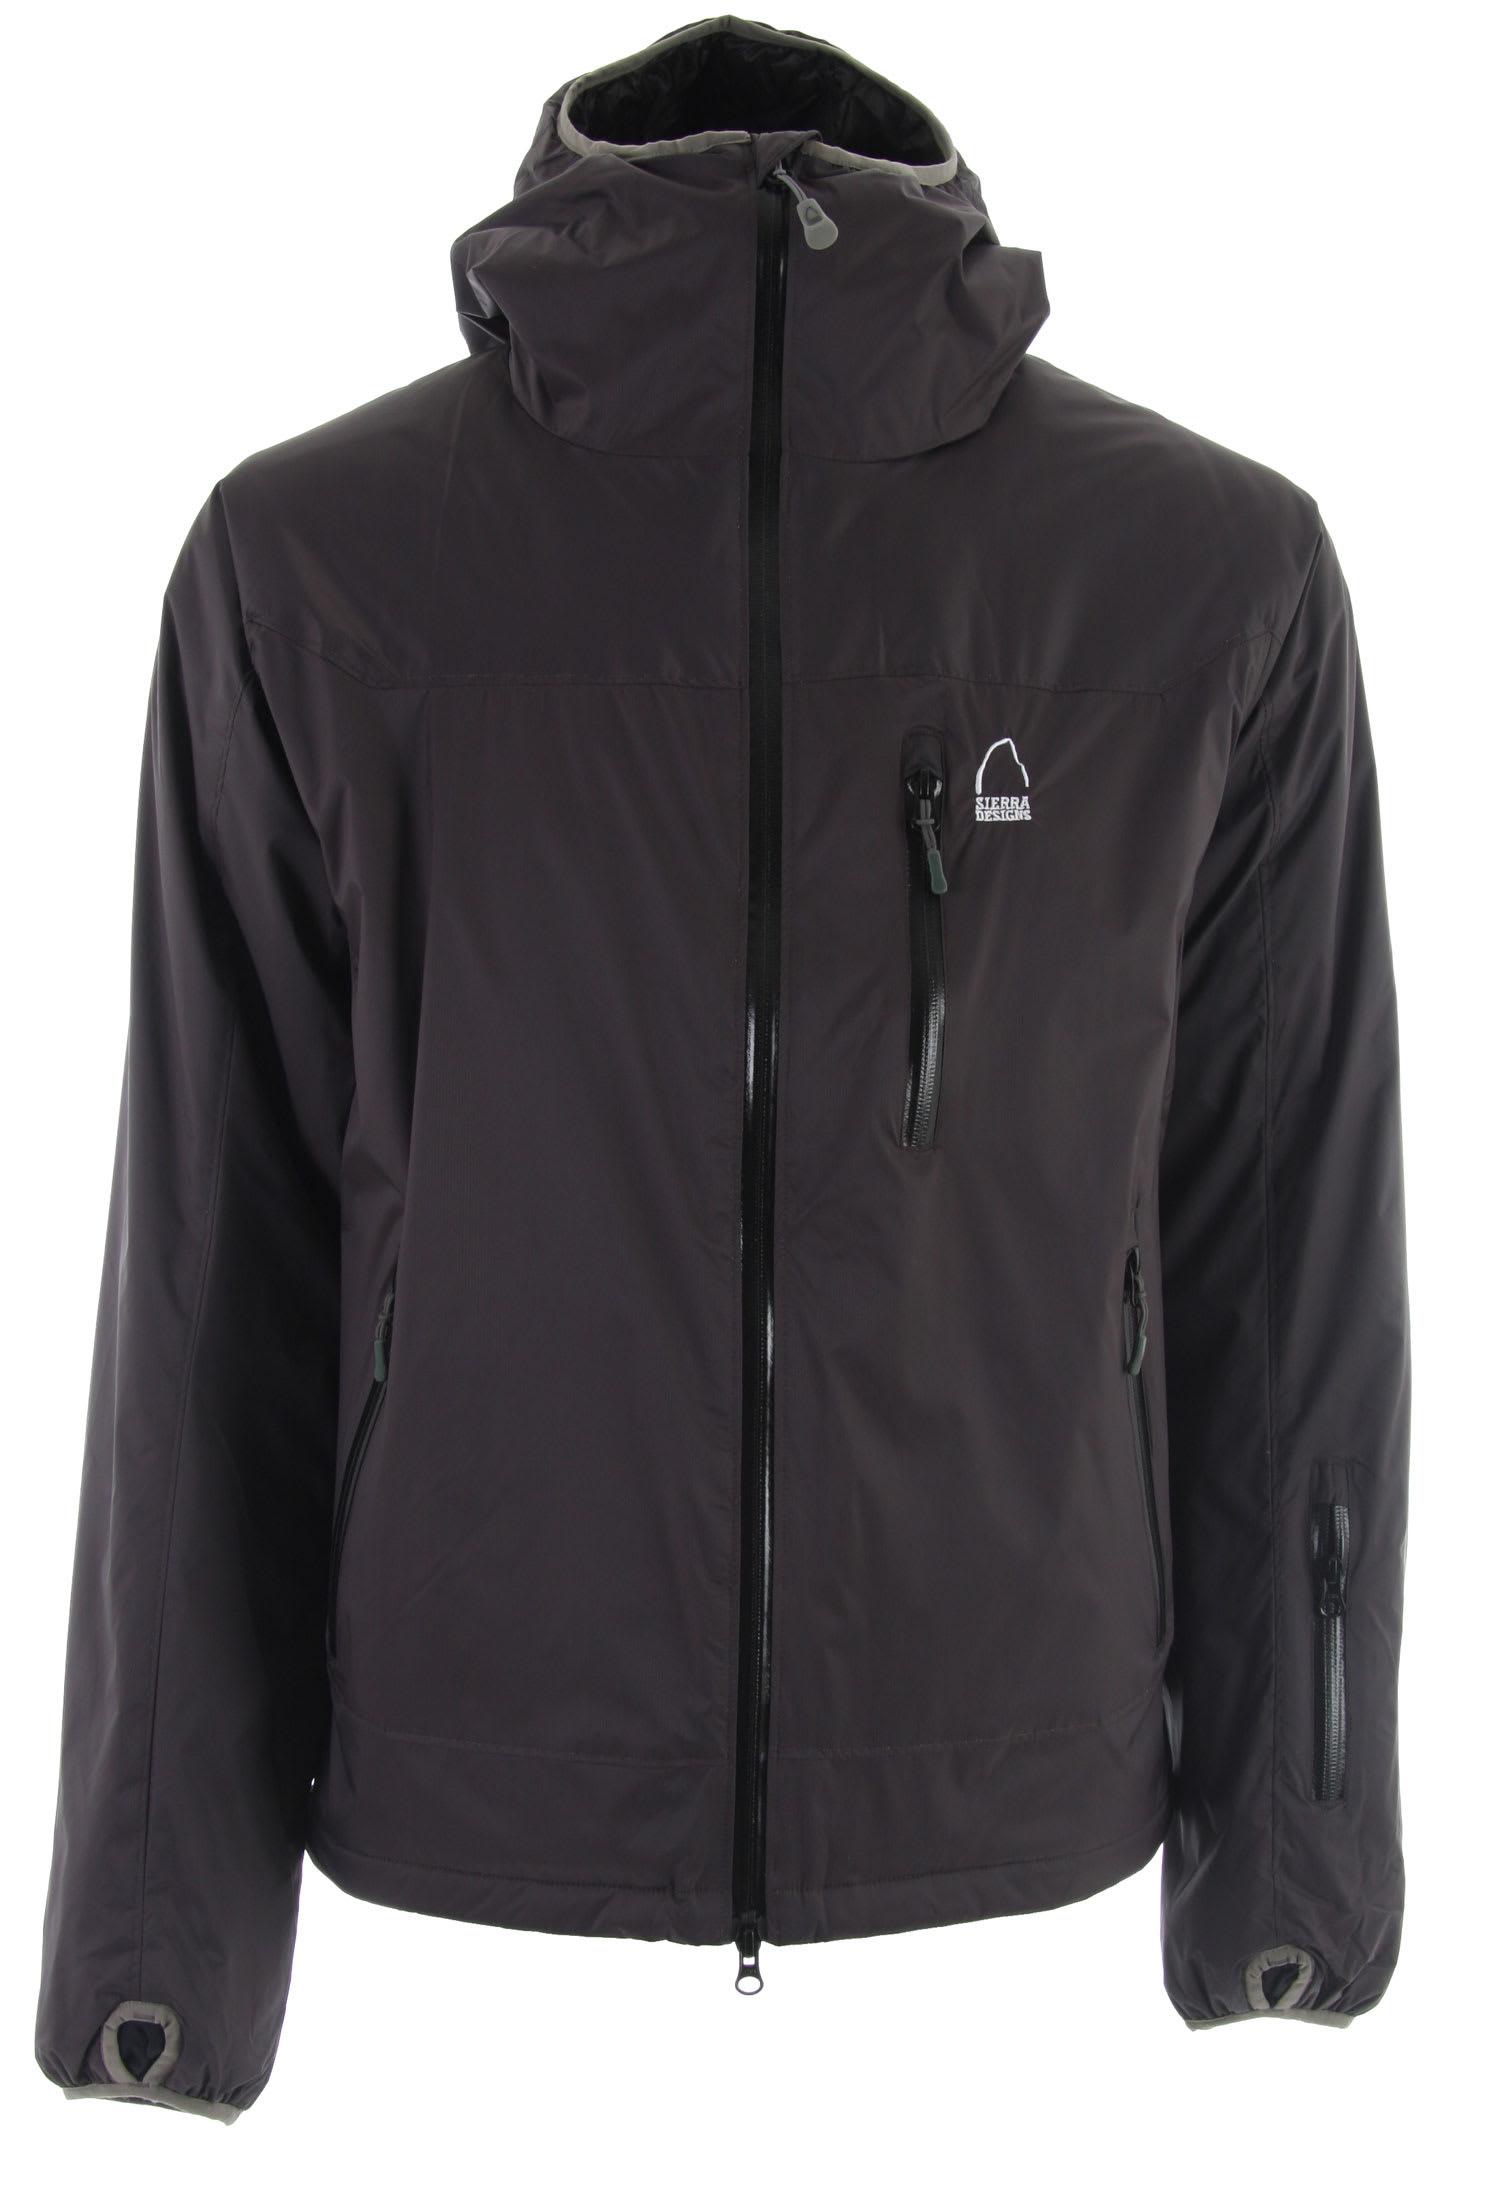 Shop for Sierra Designs N2 Fusion Shell Jacket Black - Men's